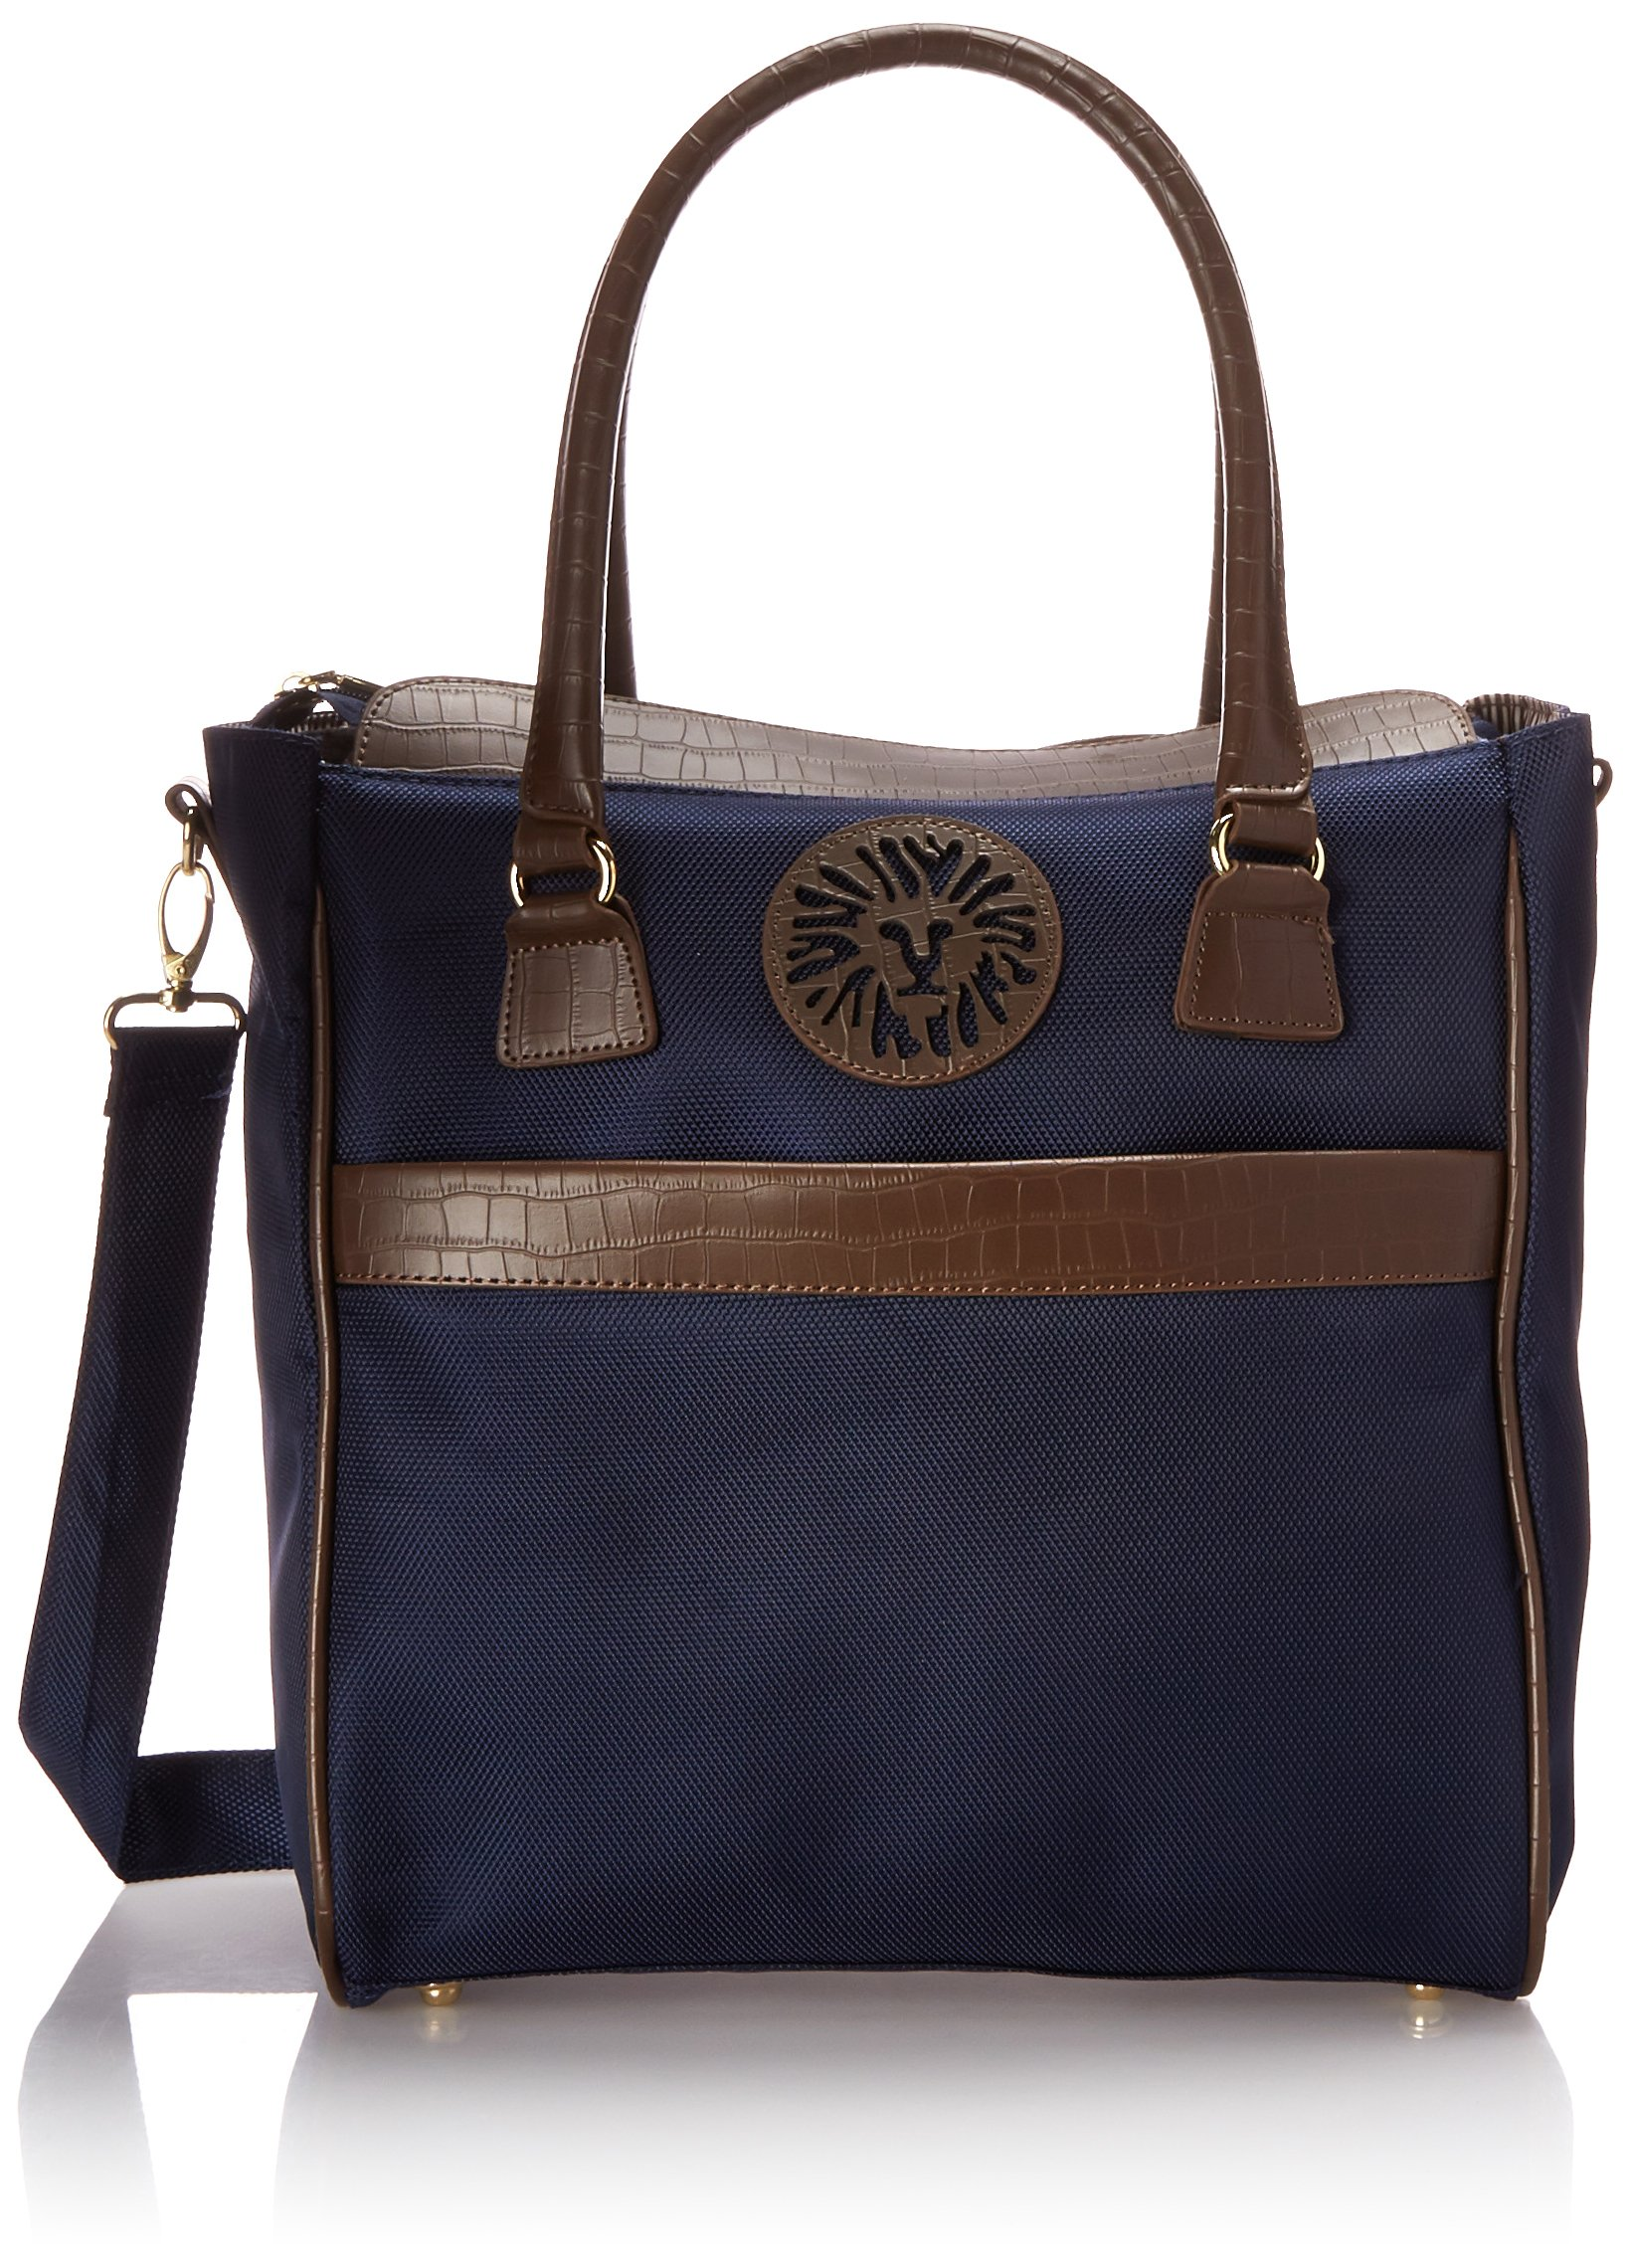 Anne Klein Perfect Travel Tote Bag, Navy